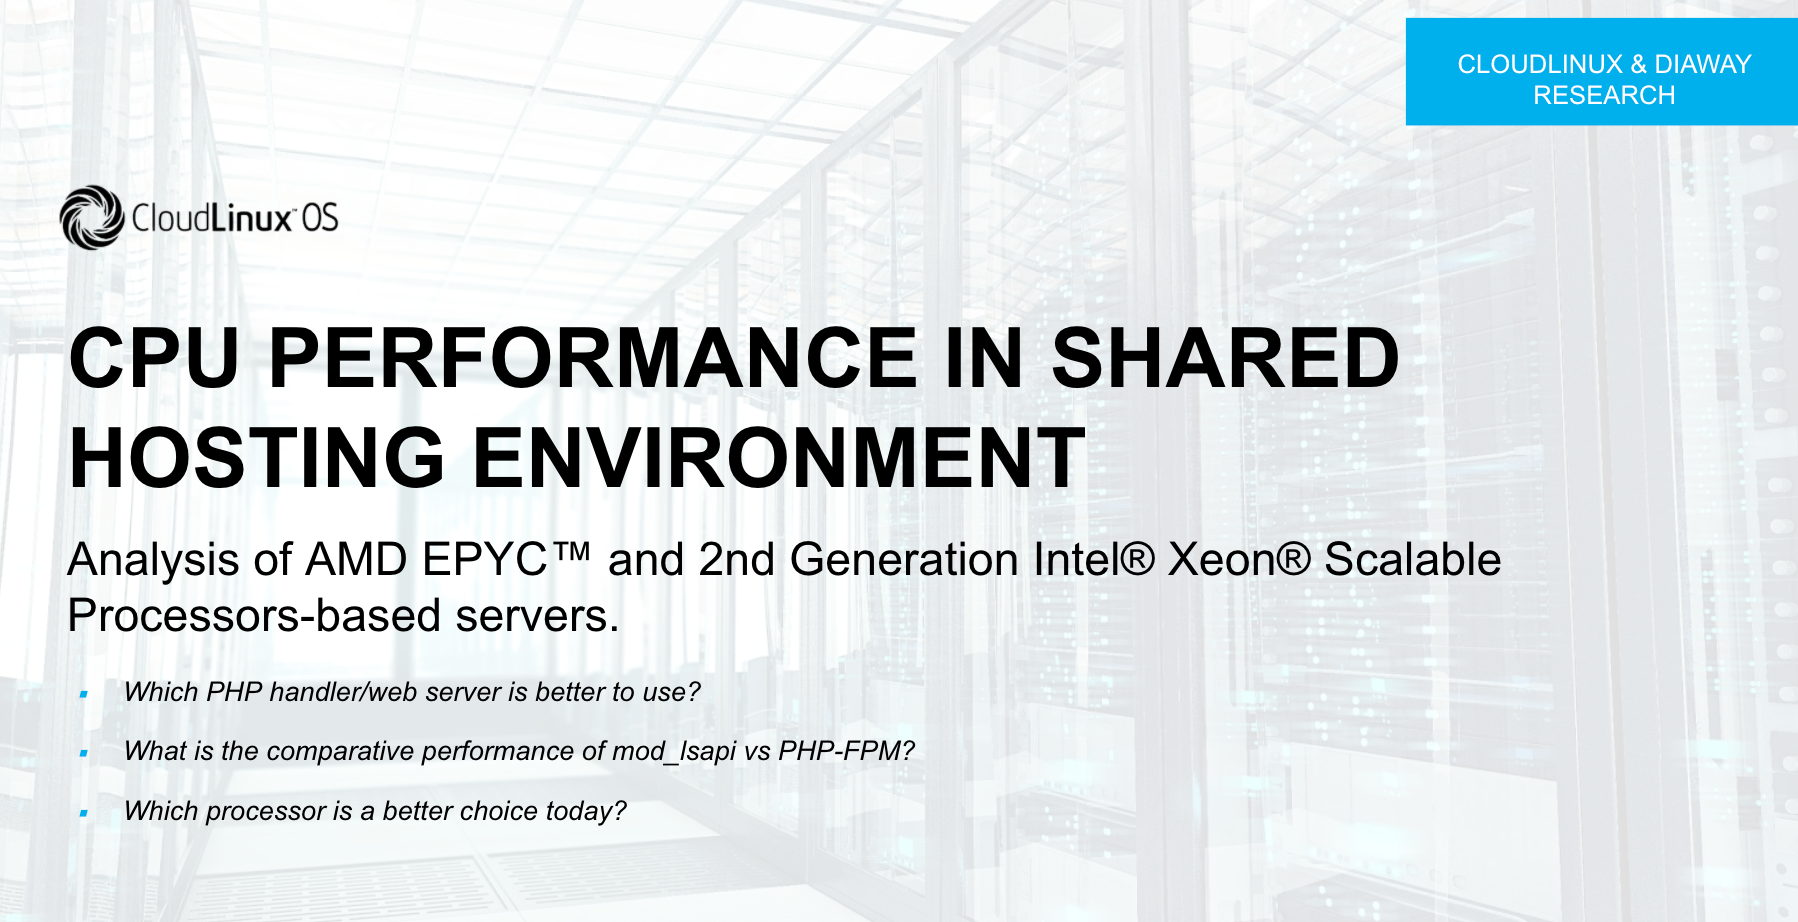 Analysis of AMD EPYC™ AND 2nd Generation Intel® Xeon® Scalable Processors-based servers